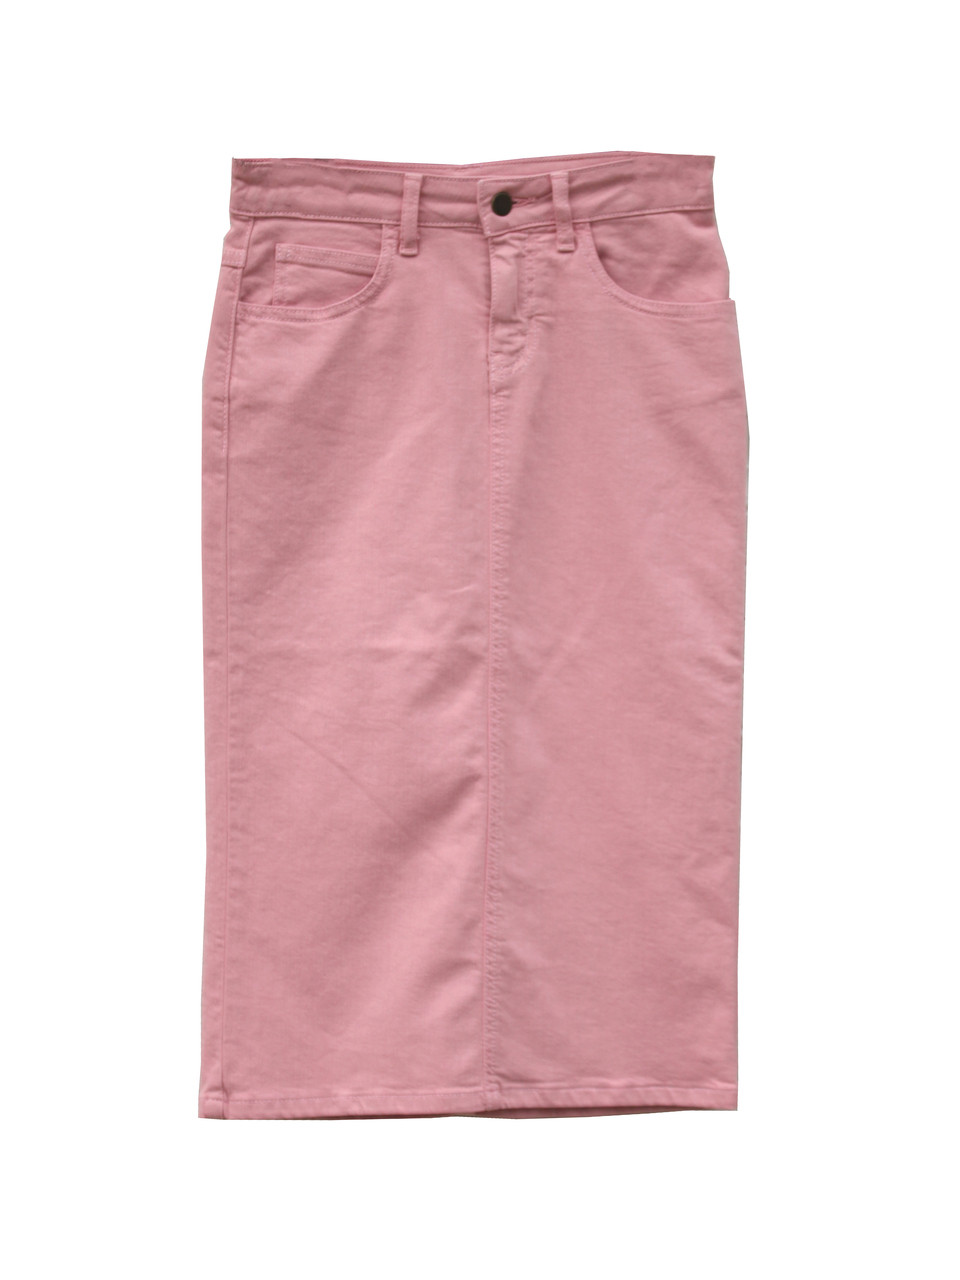 79356364b3 Colored Denim Skirt - Rose Pink - Beautiful One Modest Apparel